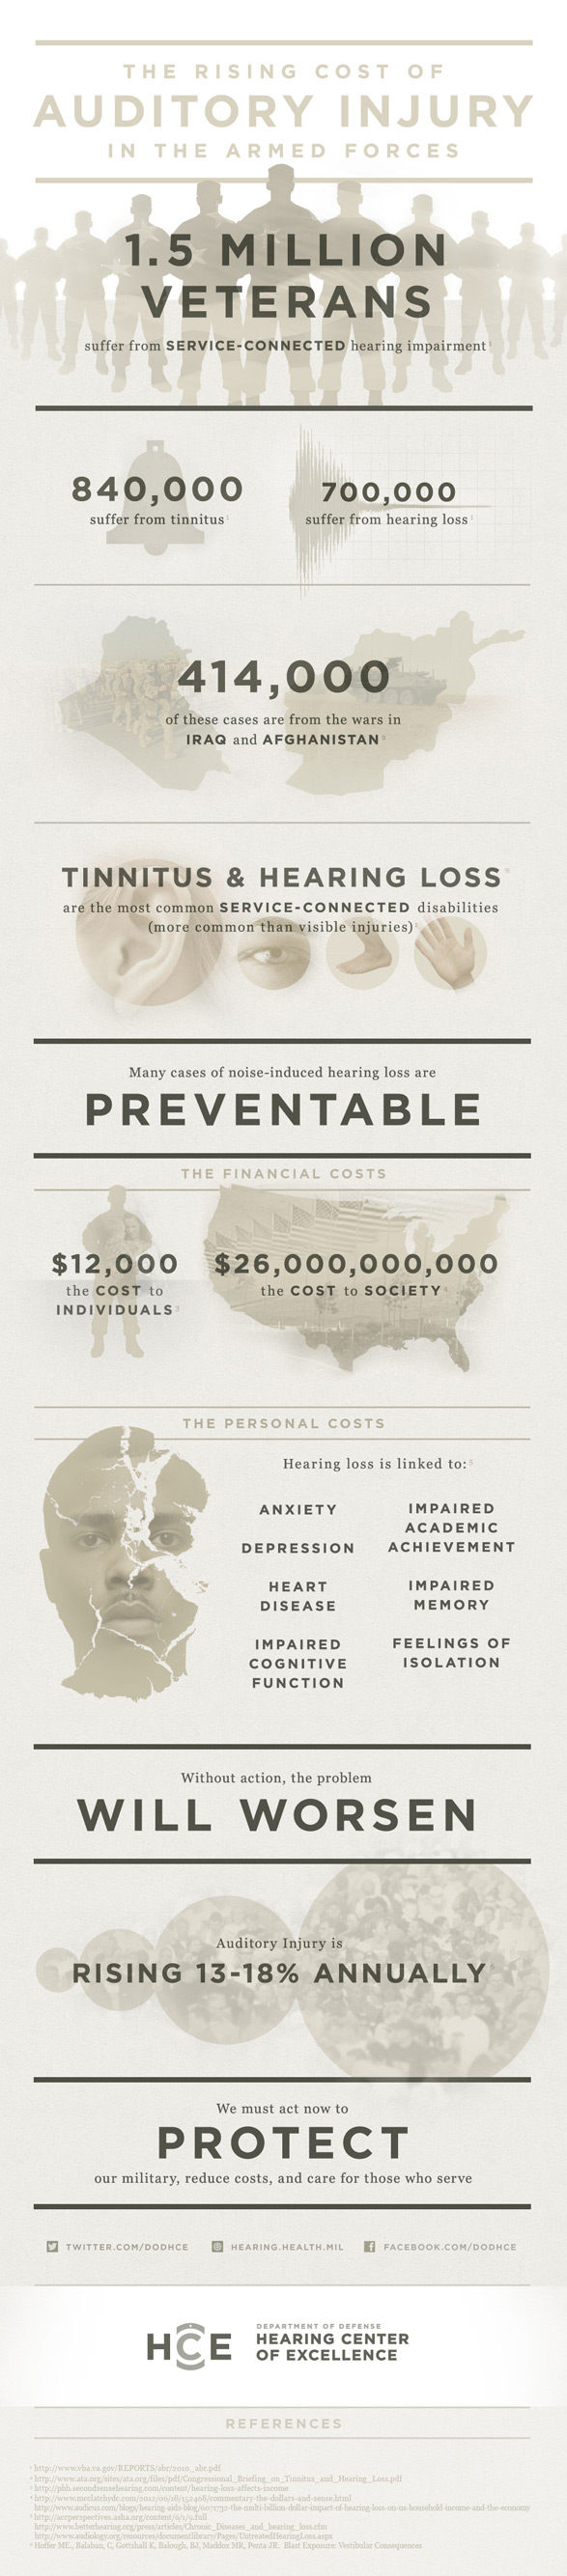 Infographic_RisingCostofAuditoryInjury_FINAL